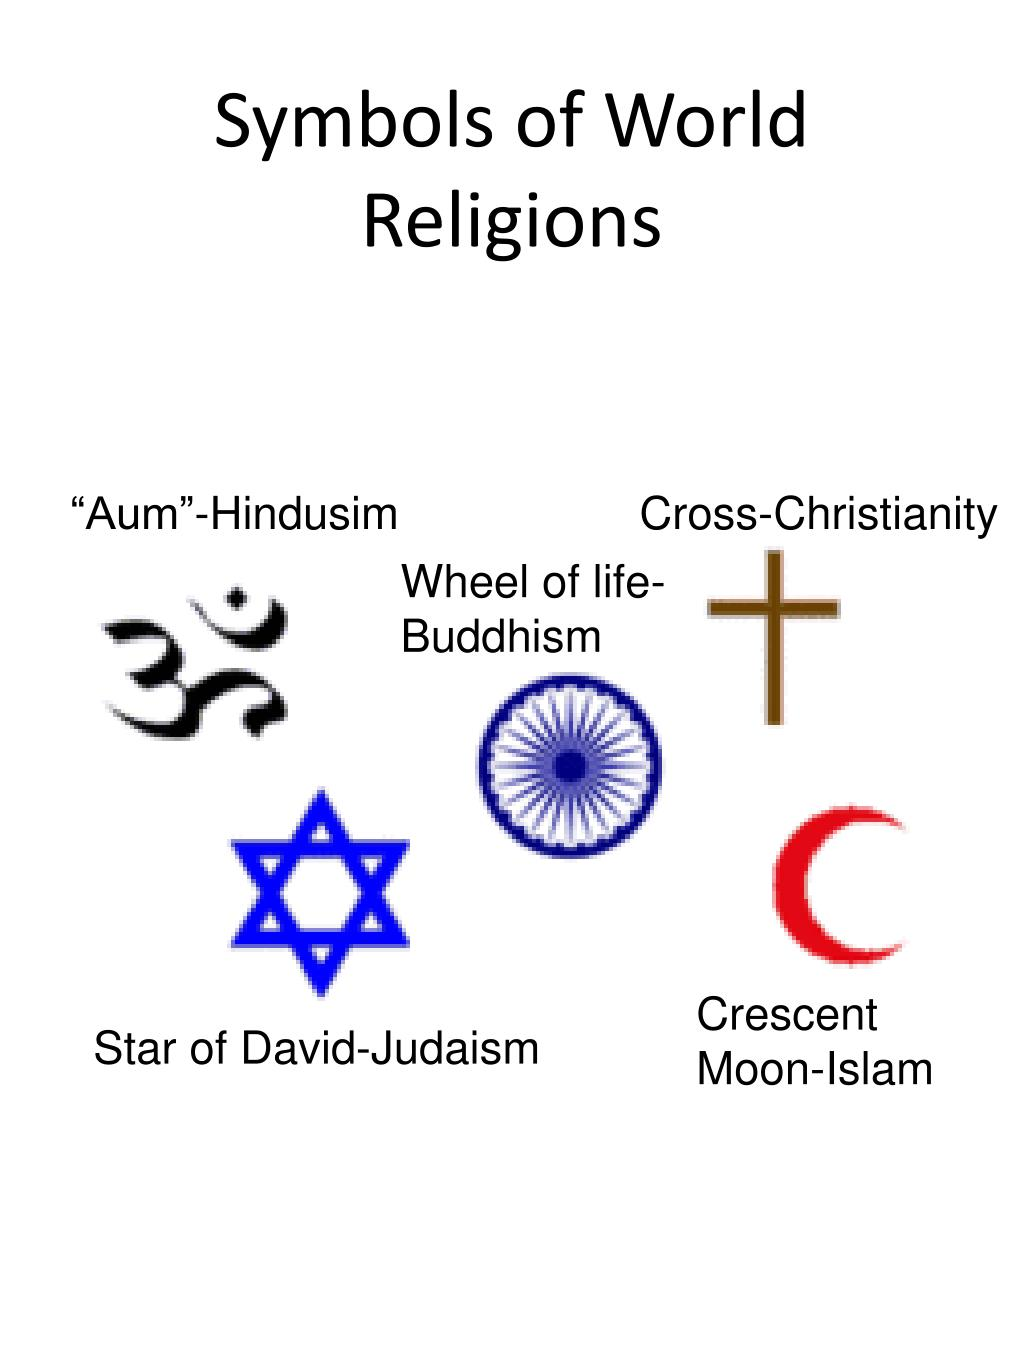 Symbols of World Religions